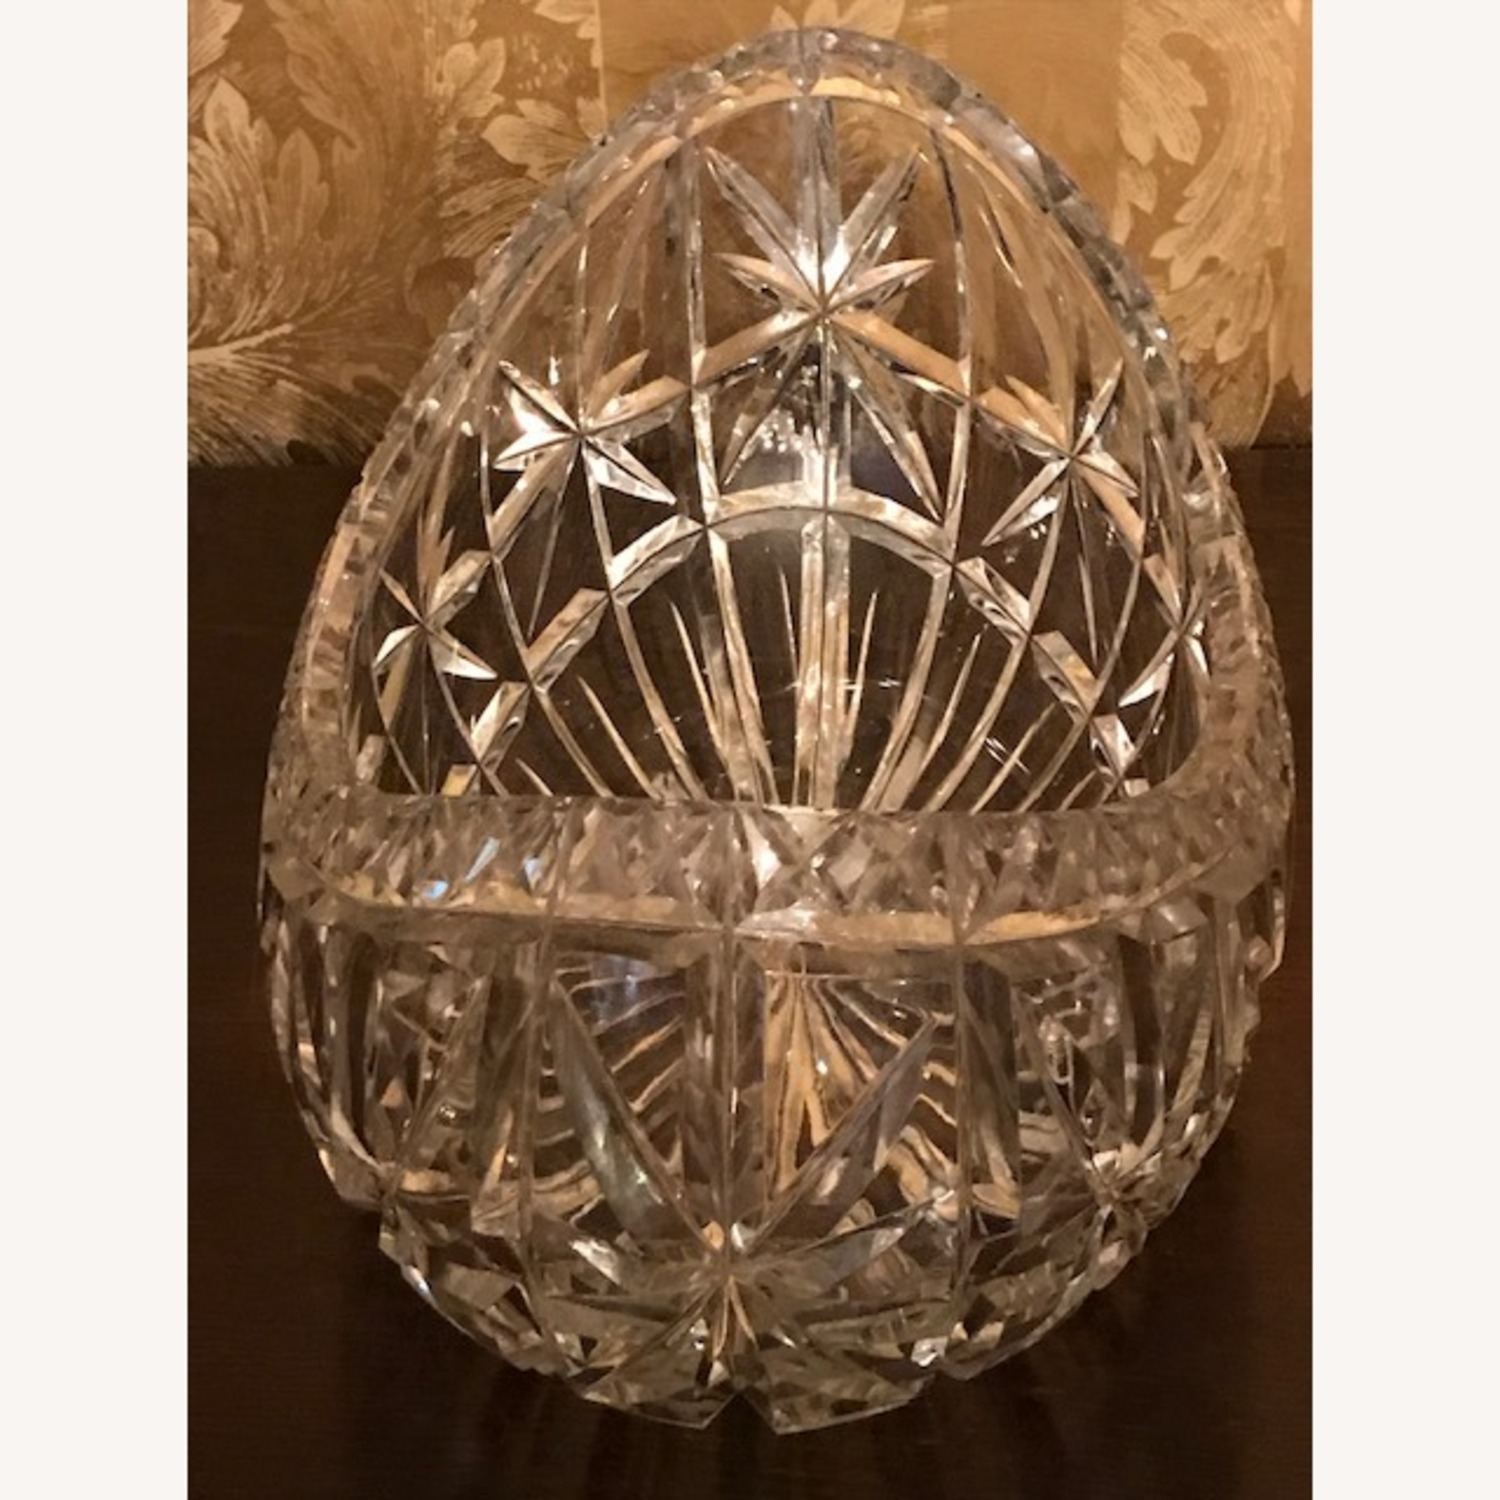 Enormous Antique 1800s Hand Cut Crystal Boat Bowl - image-5